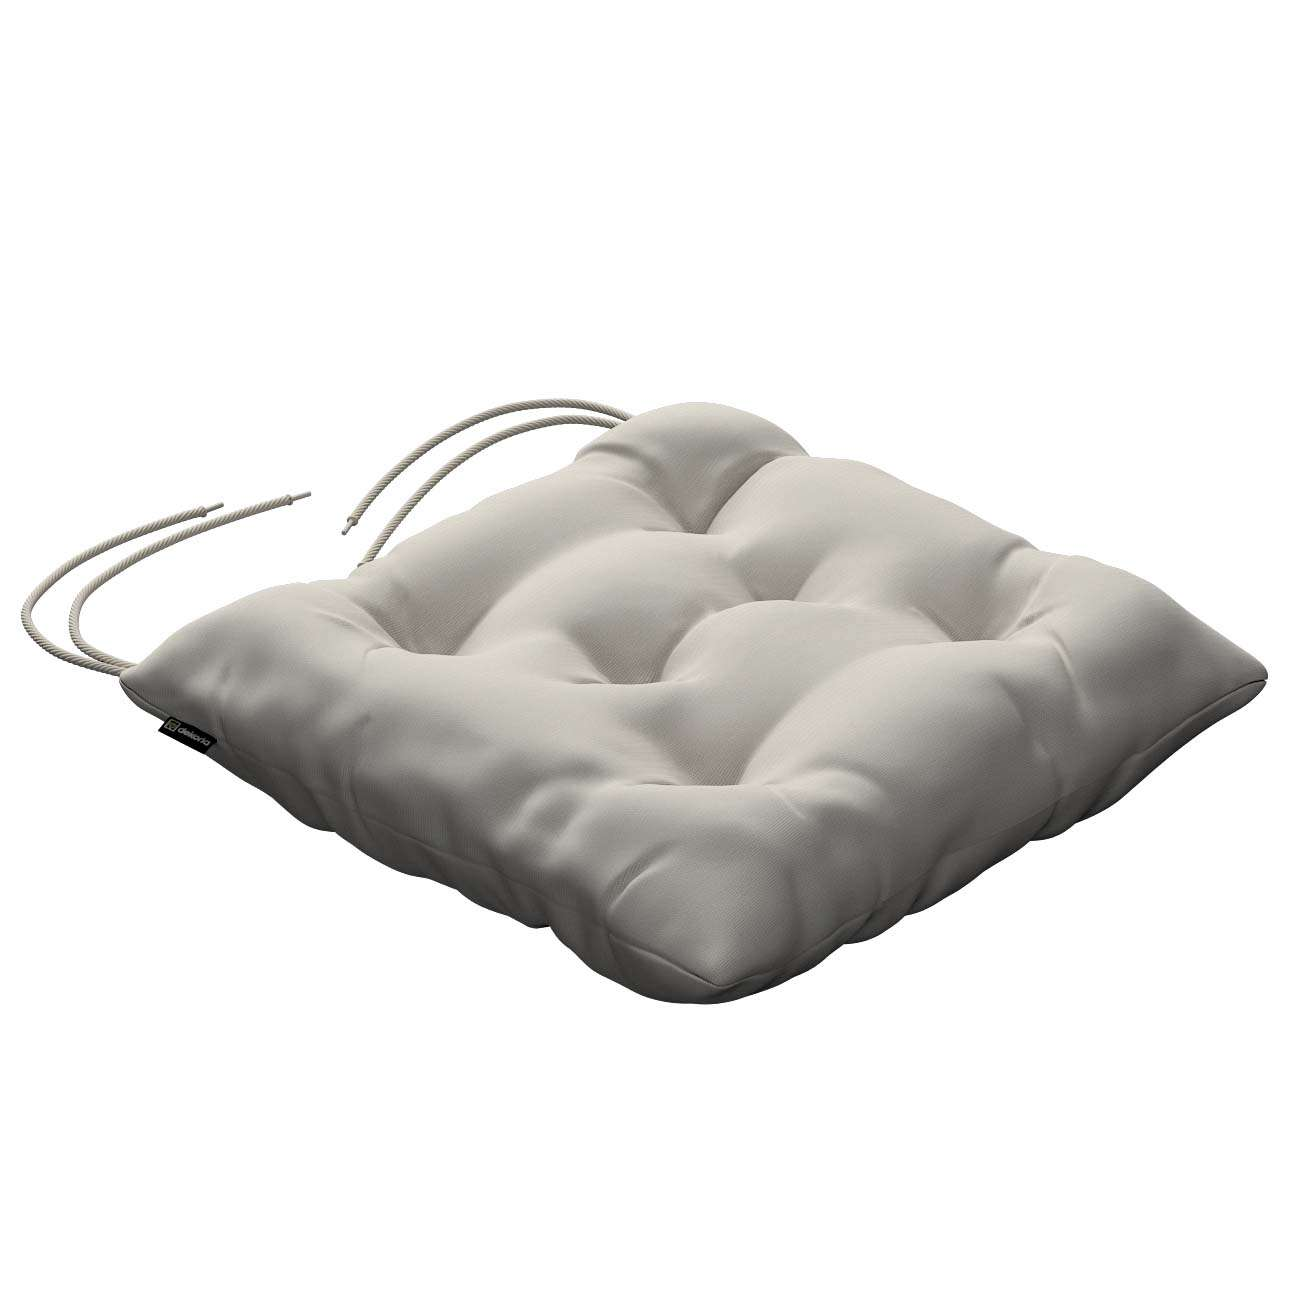 Jacek seat pad with ties 40 x 40 x 8 cm (16 x 16 x 3 inch) in collection Cotton Panama, fabric: 702-31